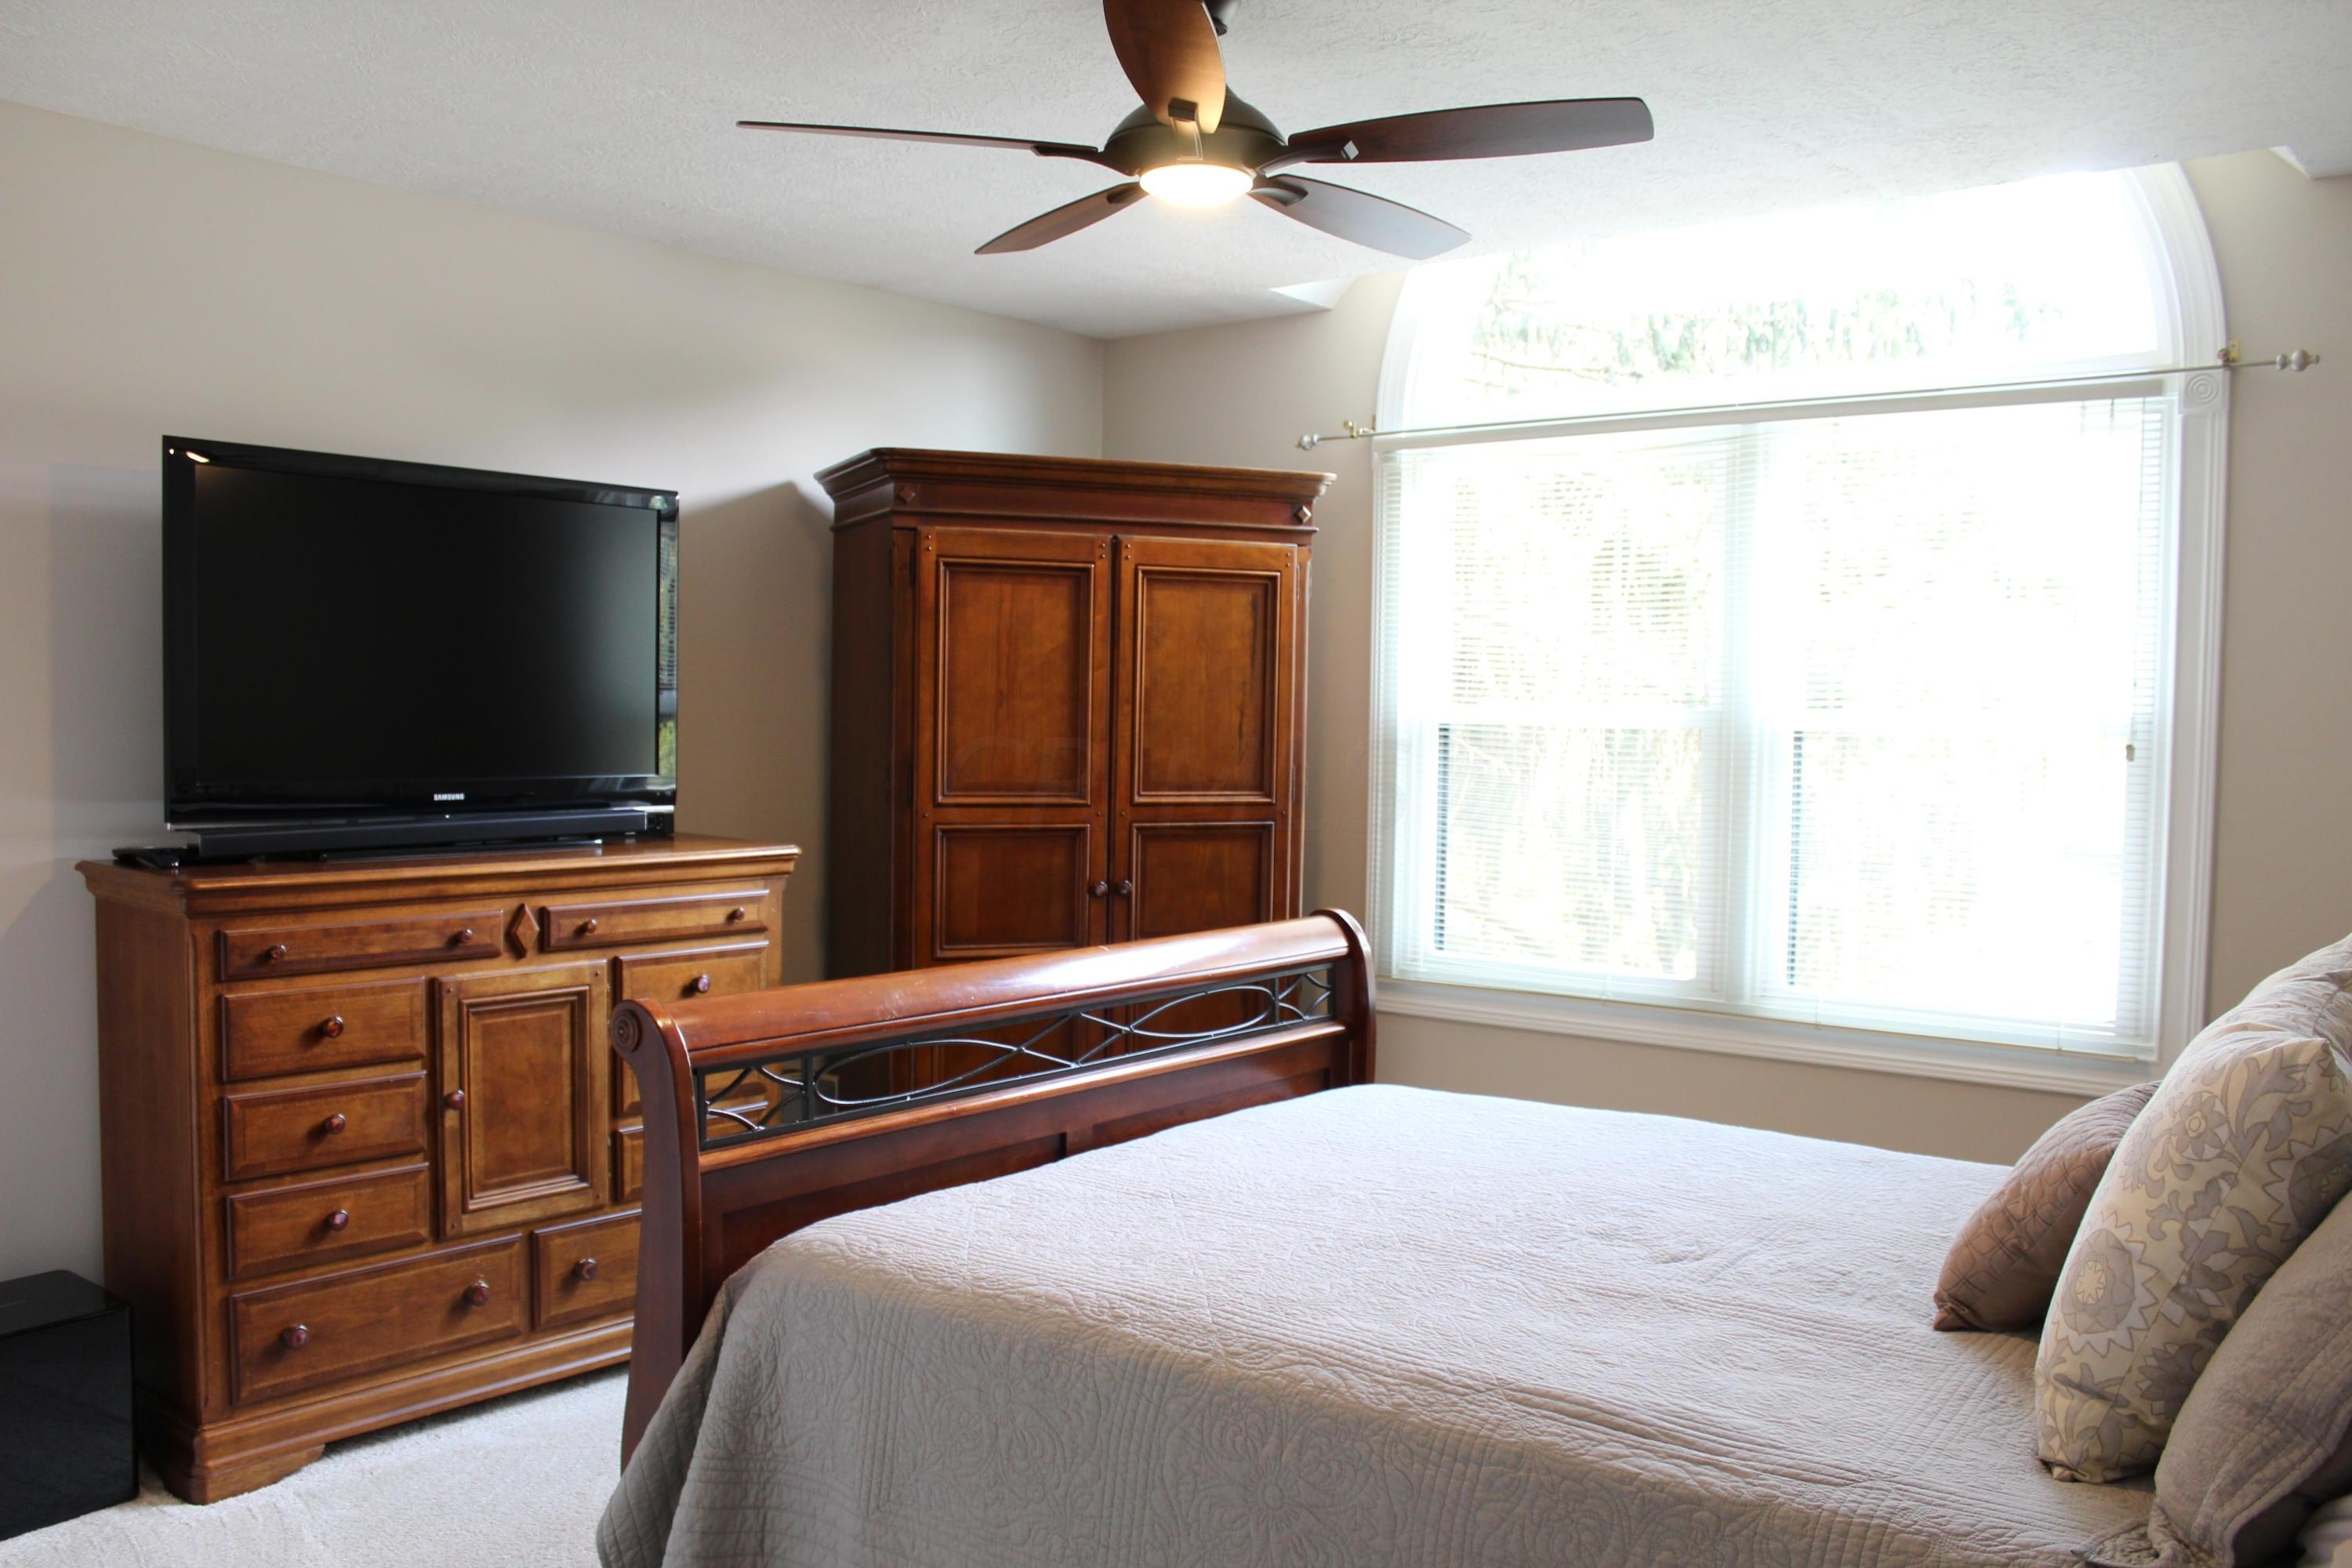 Bedroom #2 in front of house